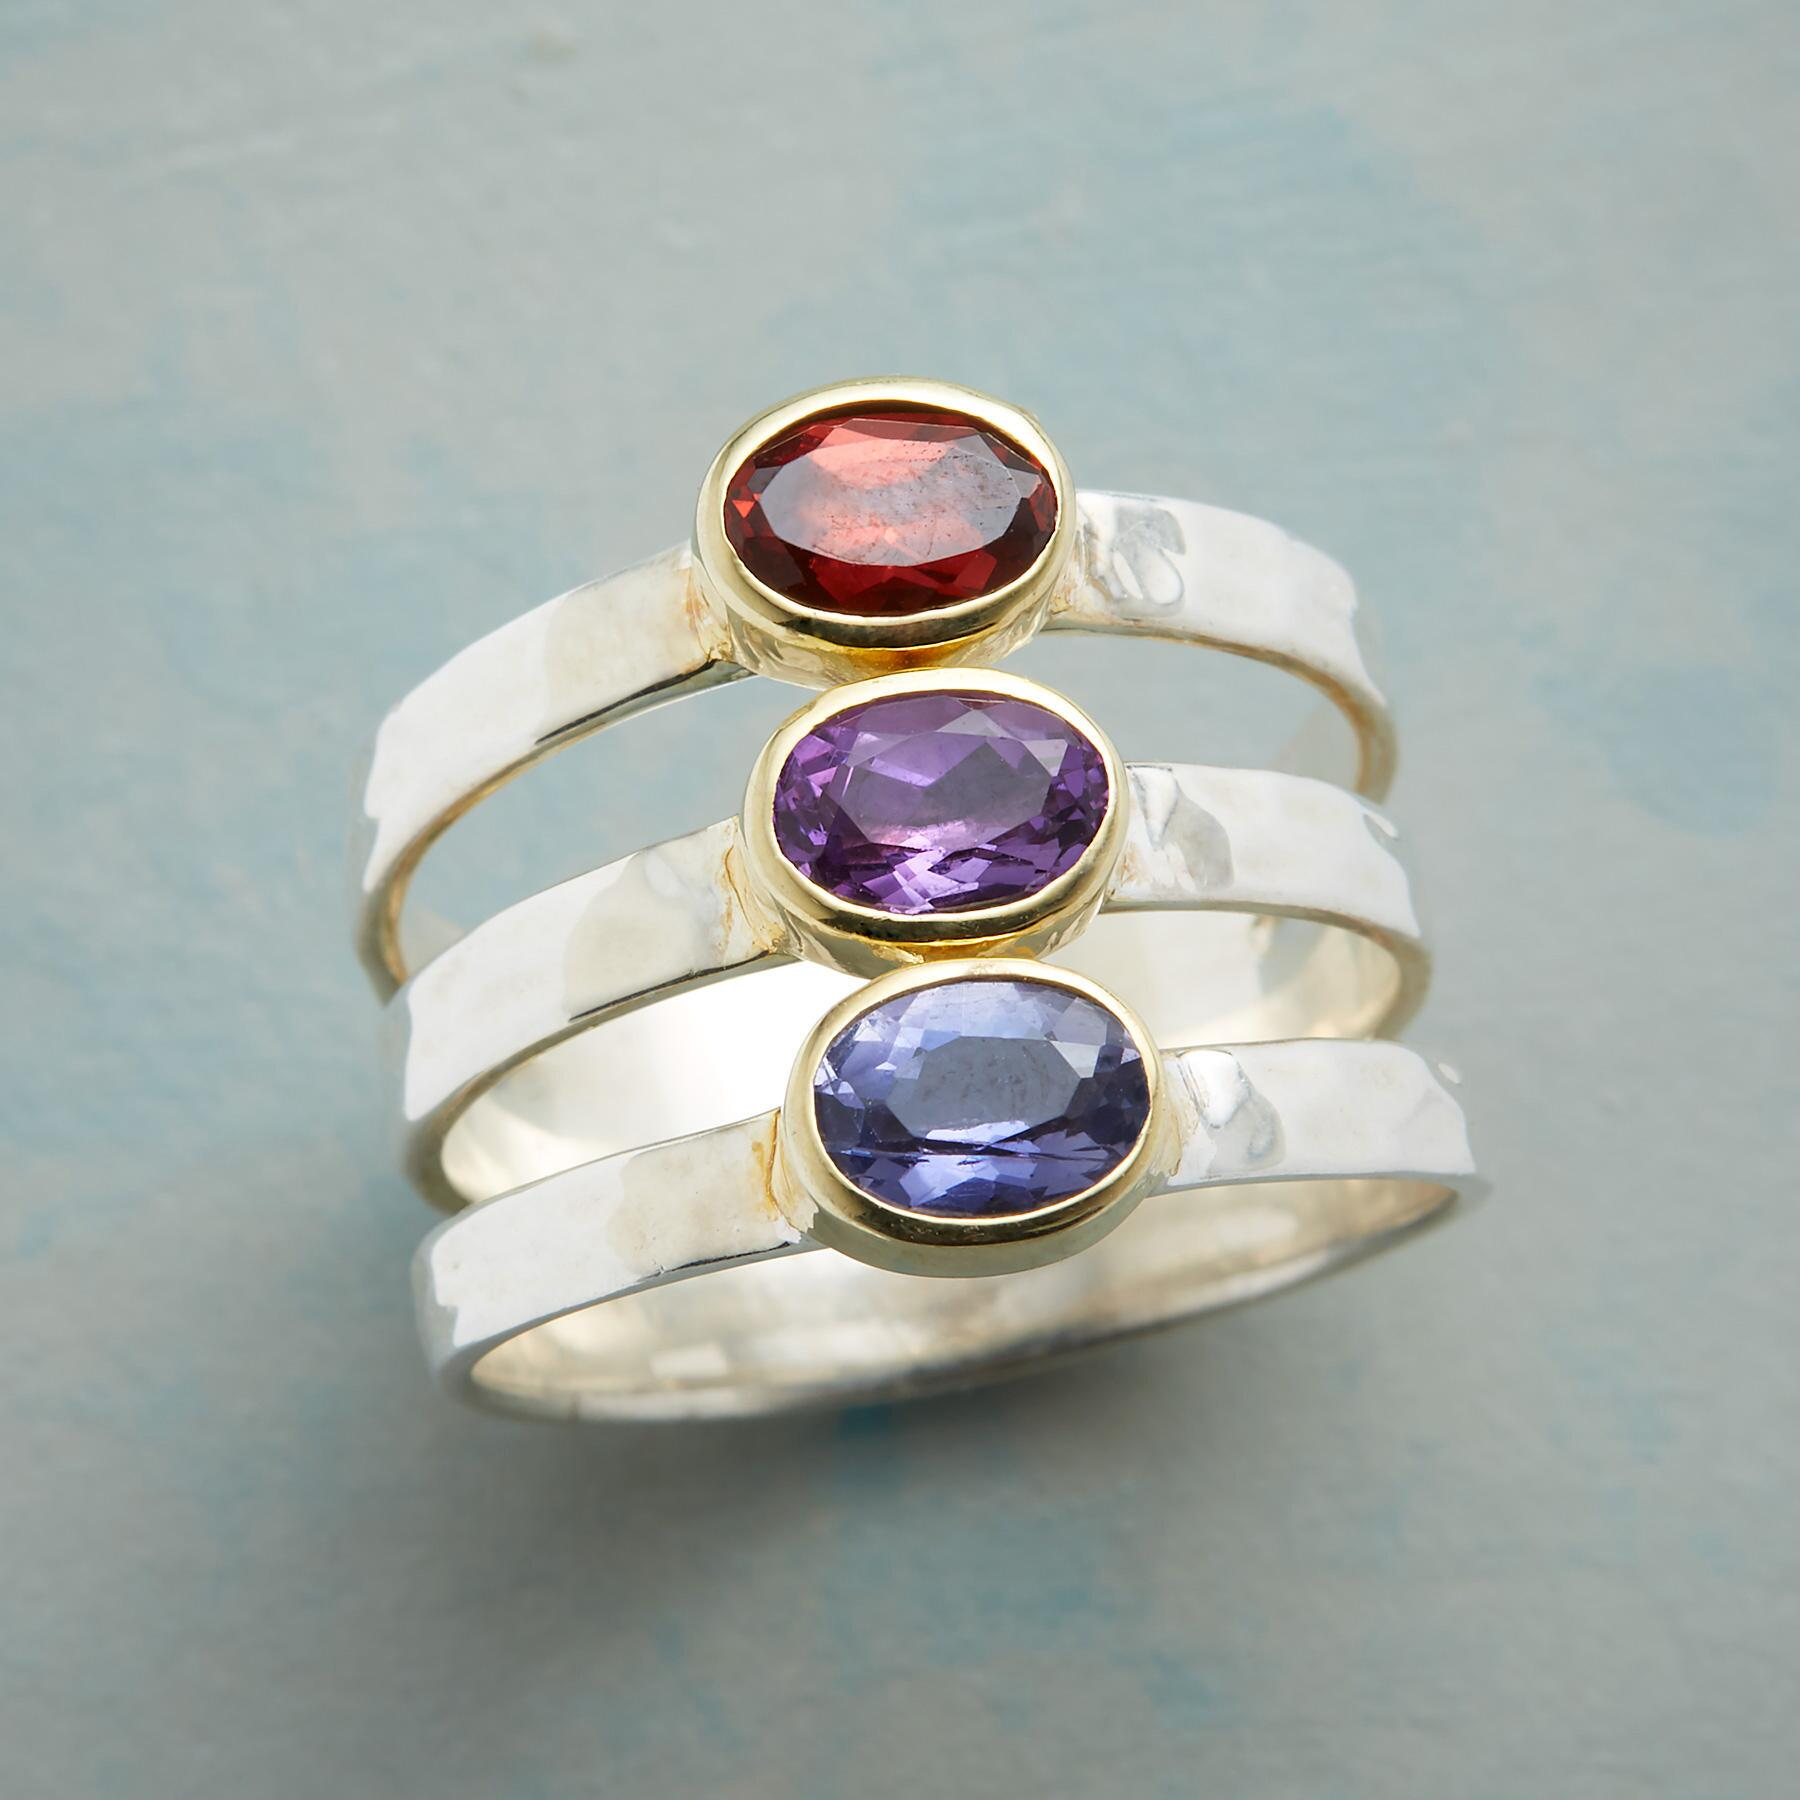 LADDER OF LIGHT RING: View 1